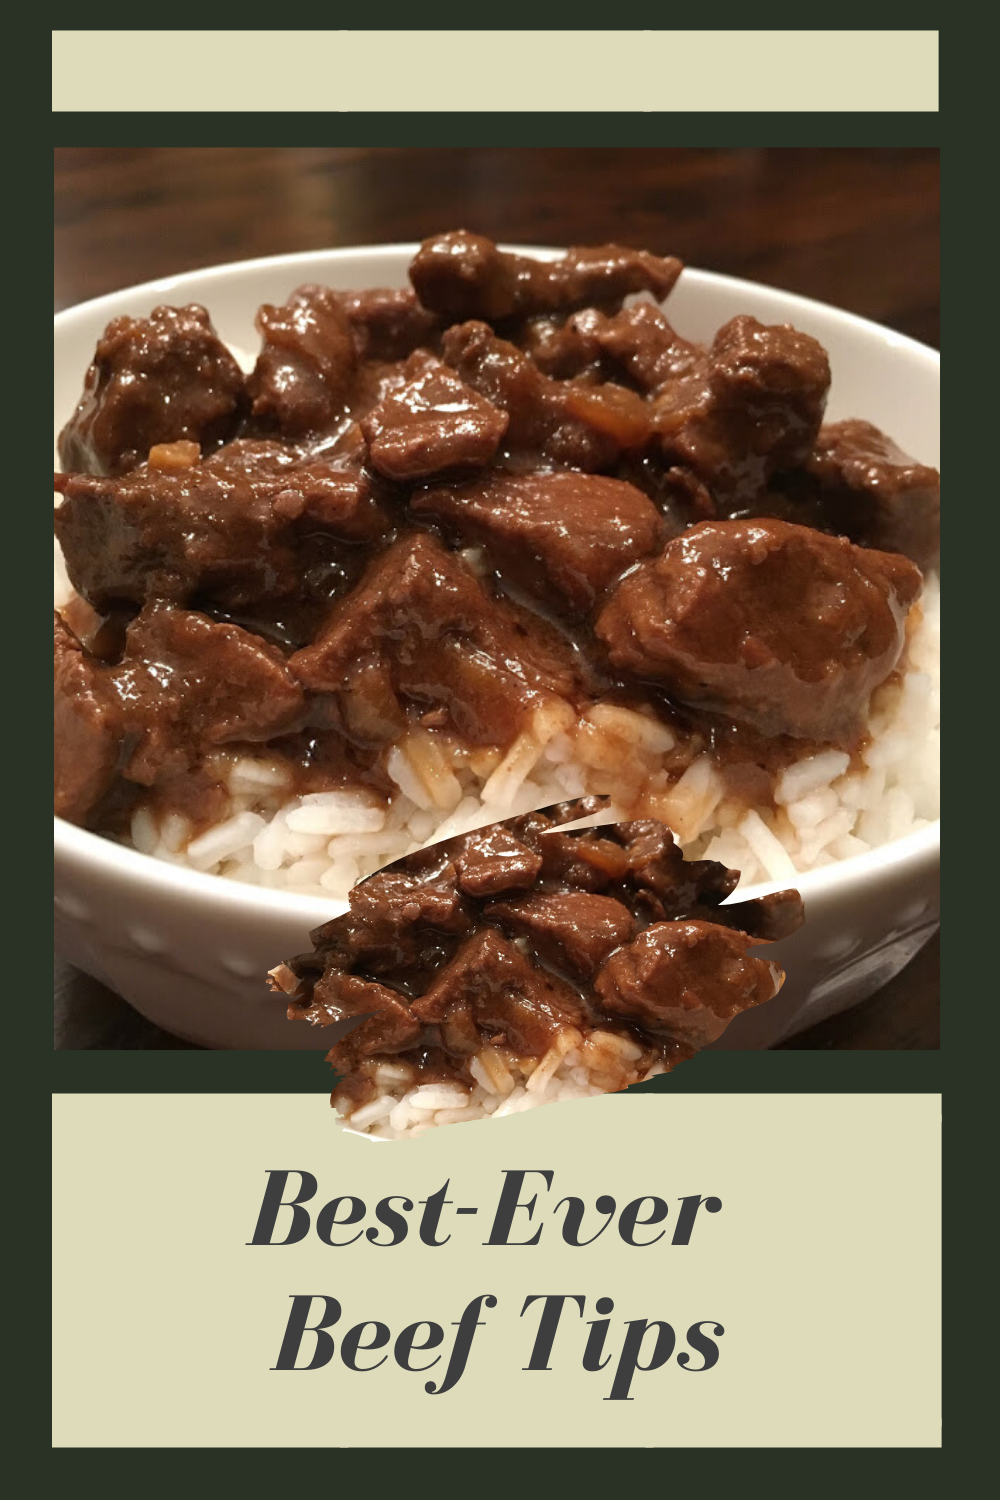 Best Ever Beef Tips In 2020 Delish Recipes Beachbody Recipes Recipes